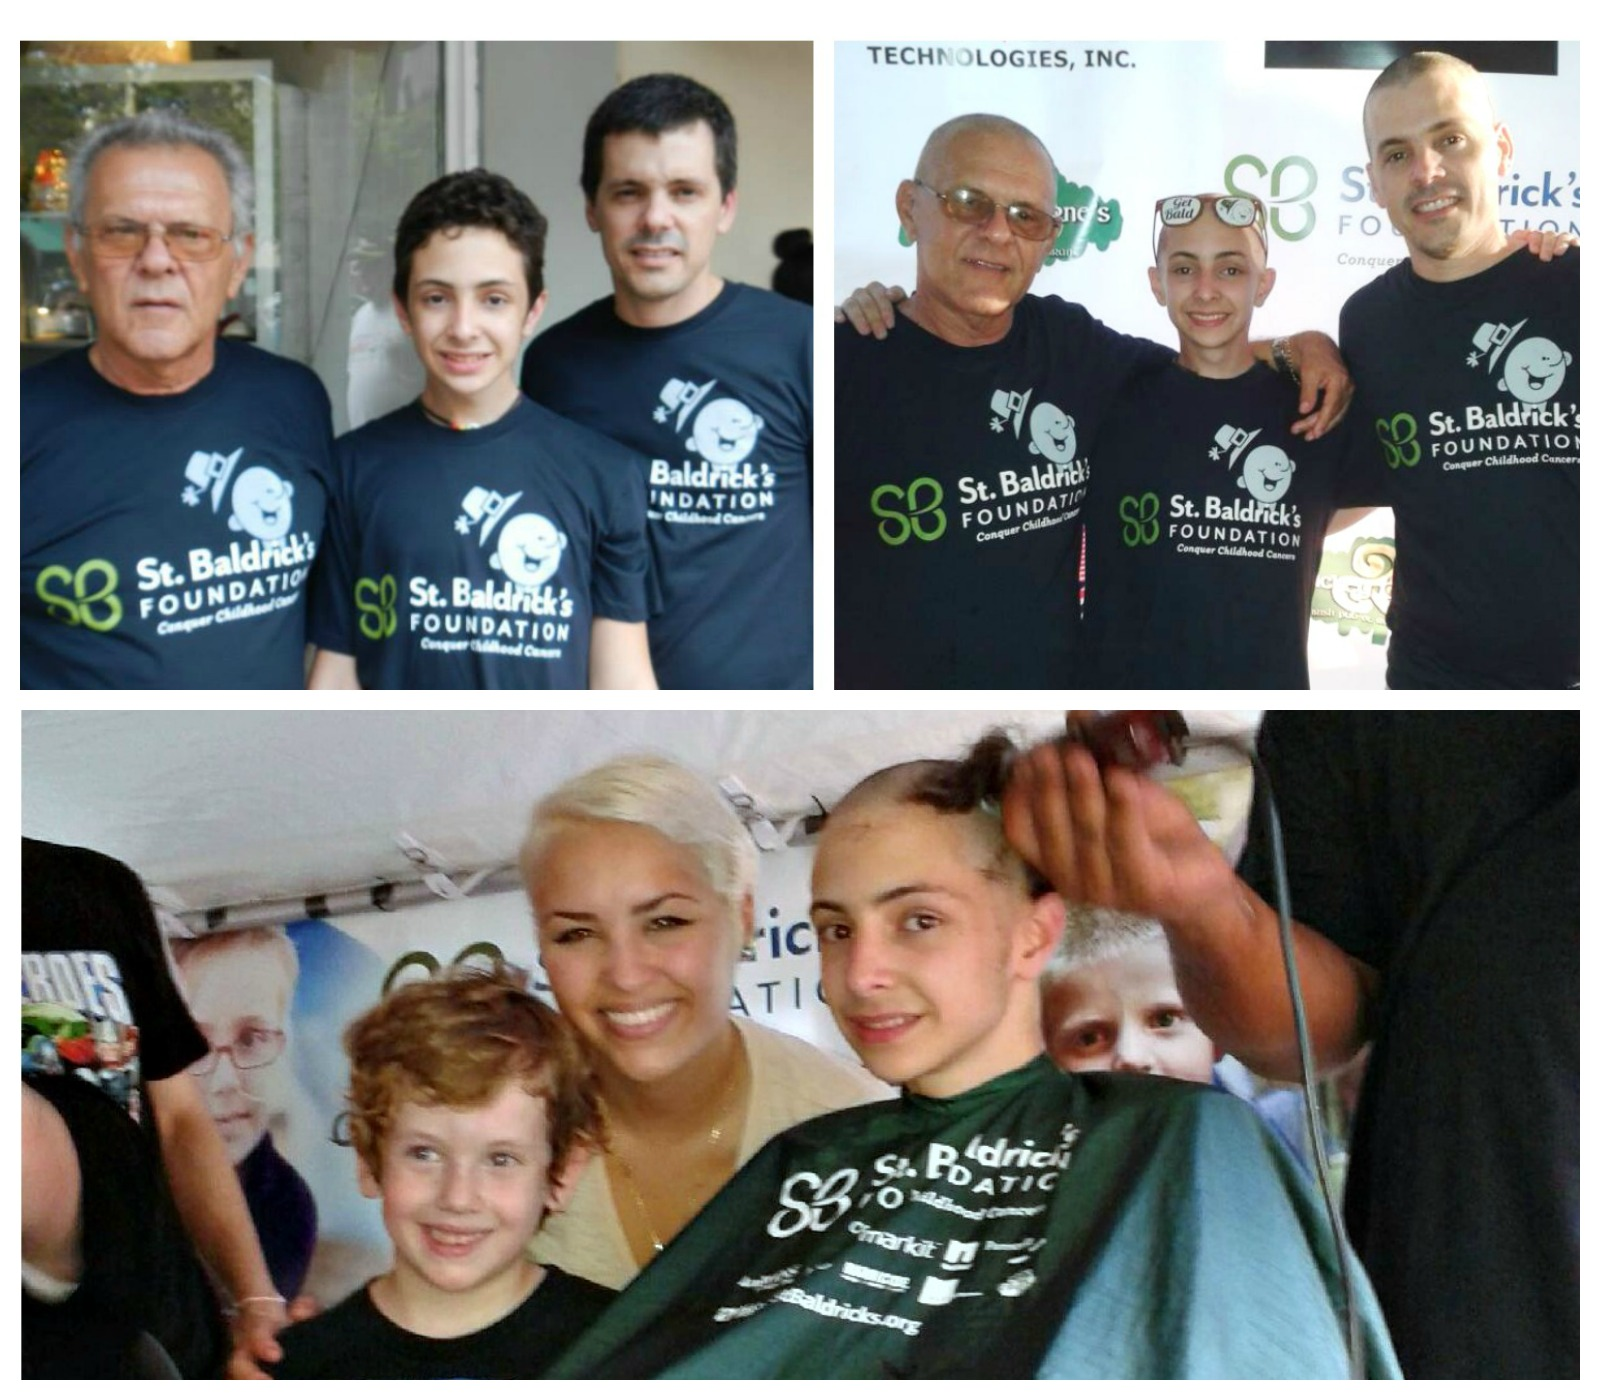 Rolando-St-Baldricks-collage